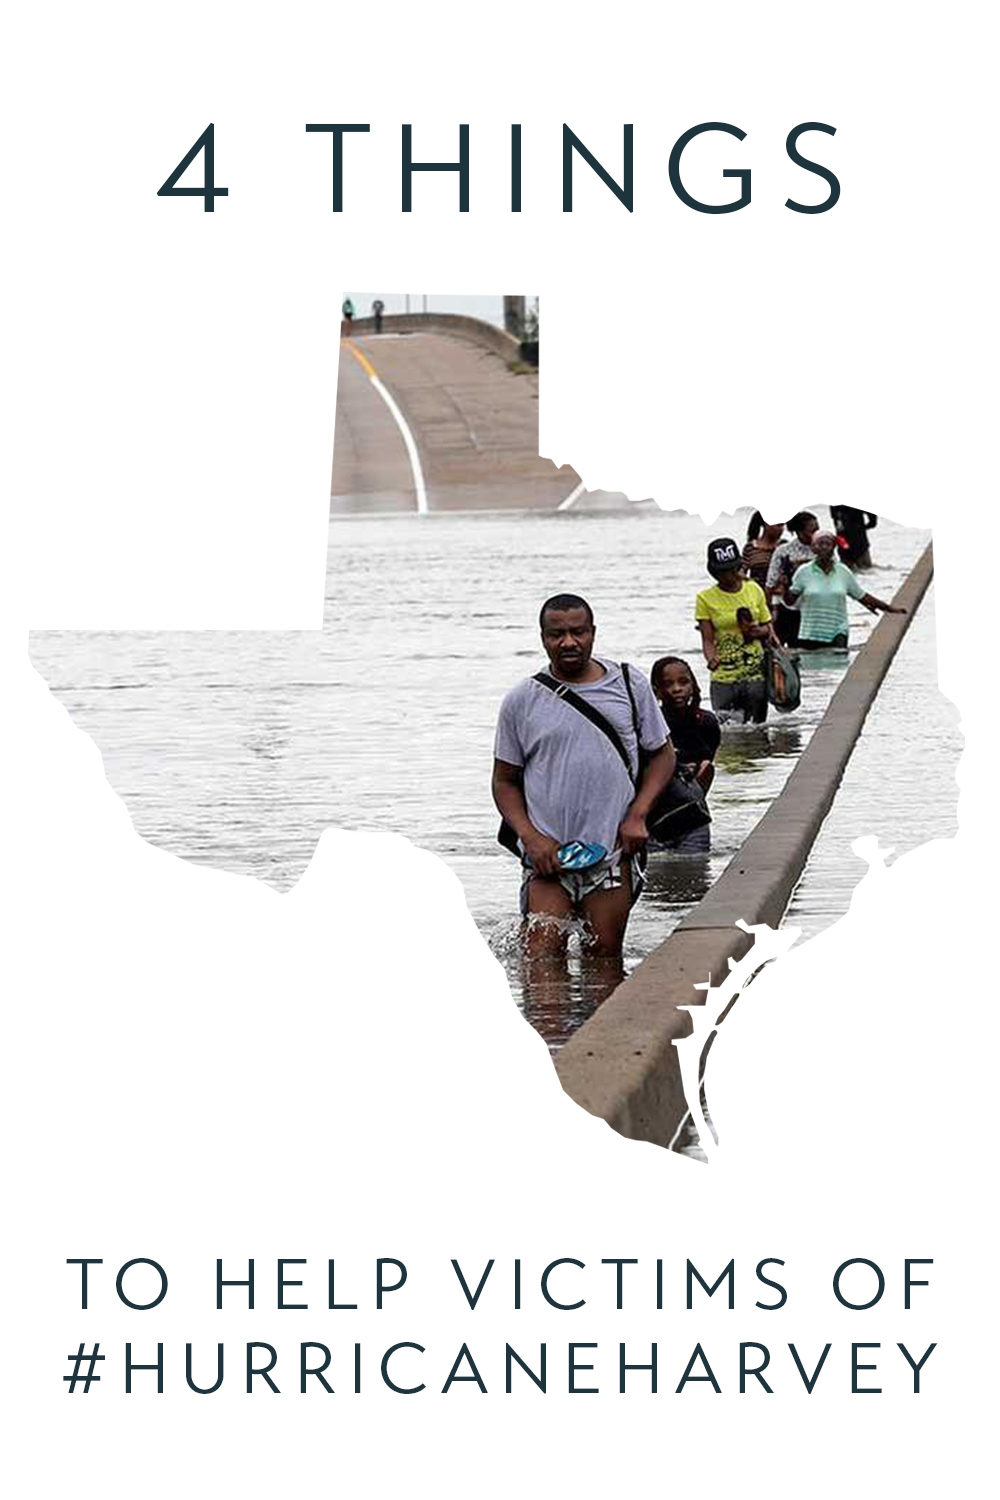 If you're reading this, chances are you were barely affected by Hurricane Harvey, save for a handful of social media updates.